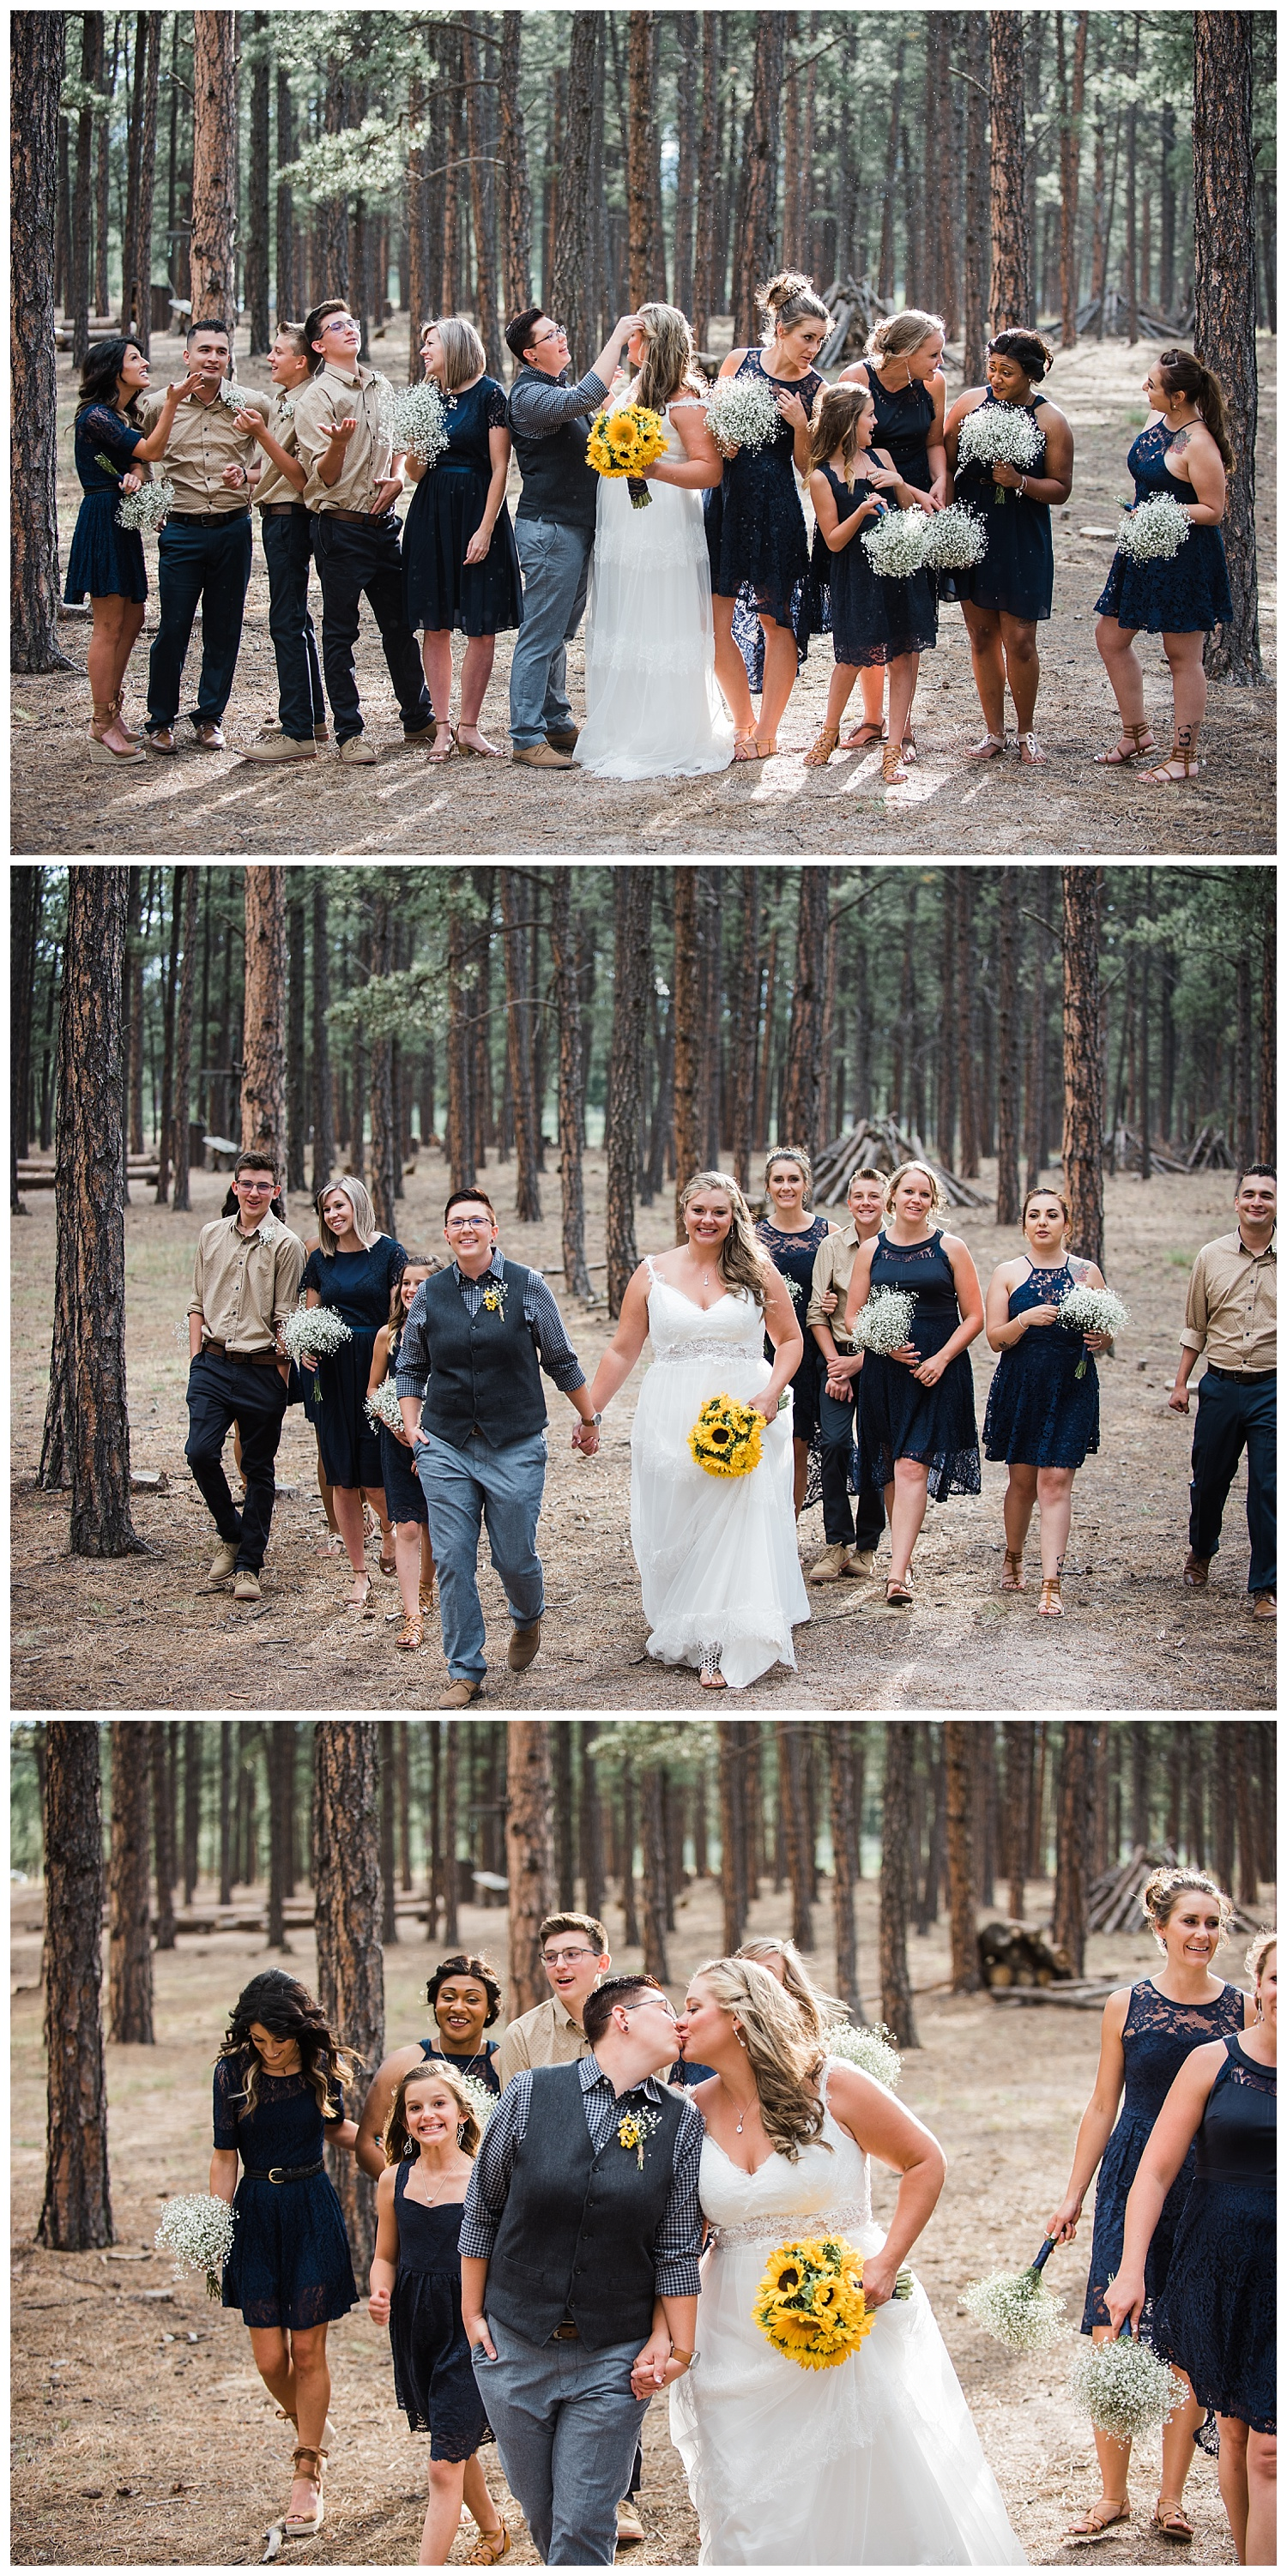 La_Floret_Wedding_Venue_CO_Springs_Colorado_Weddings_Apollo_Fields_026.jpg